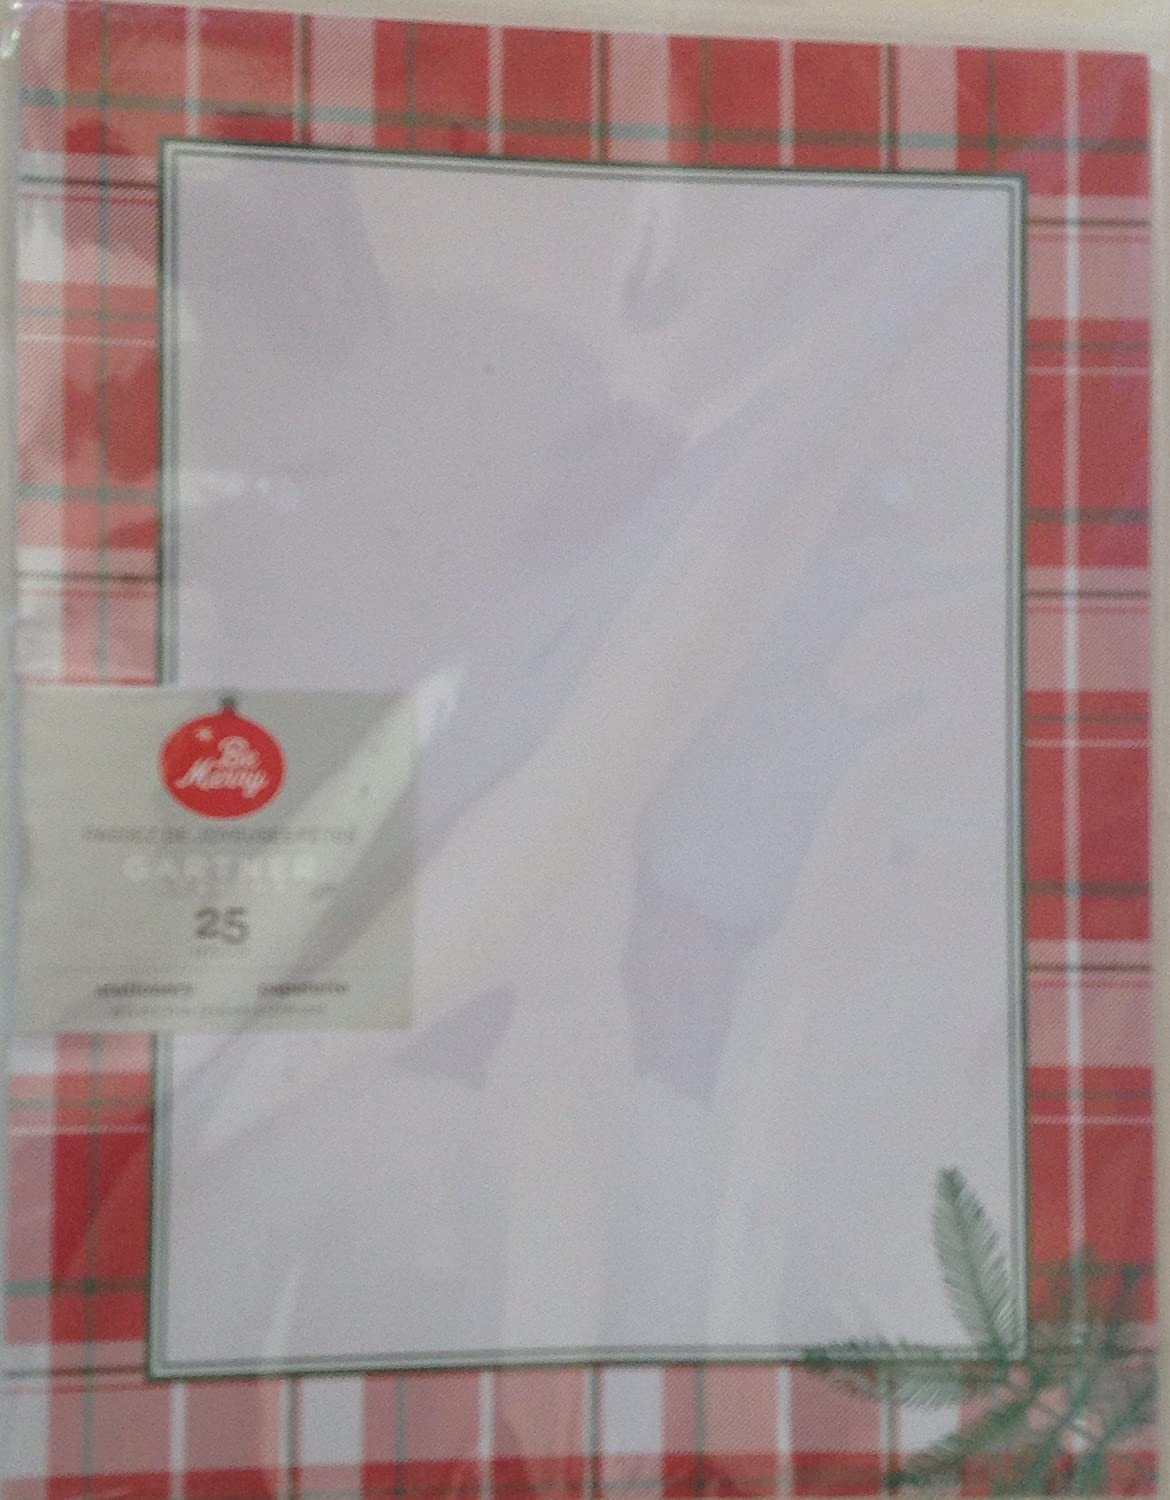 Computer Print Paper New Package 25 Sheets Christmas Plaid Pine Border 8.5x11